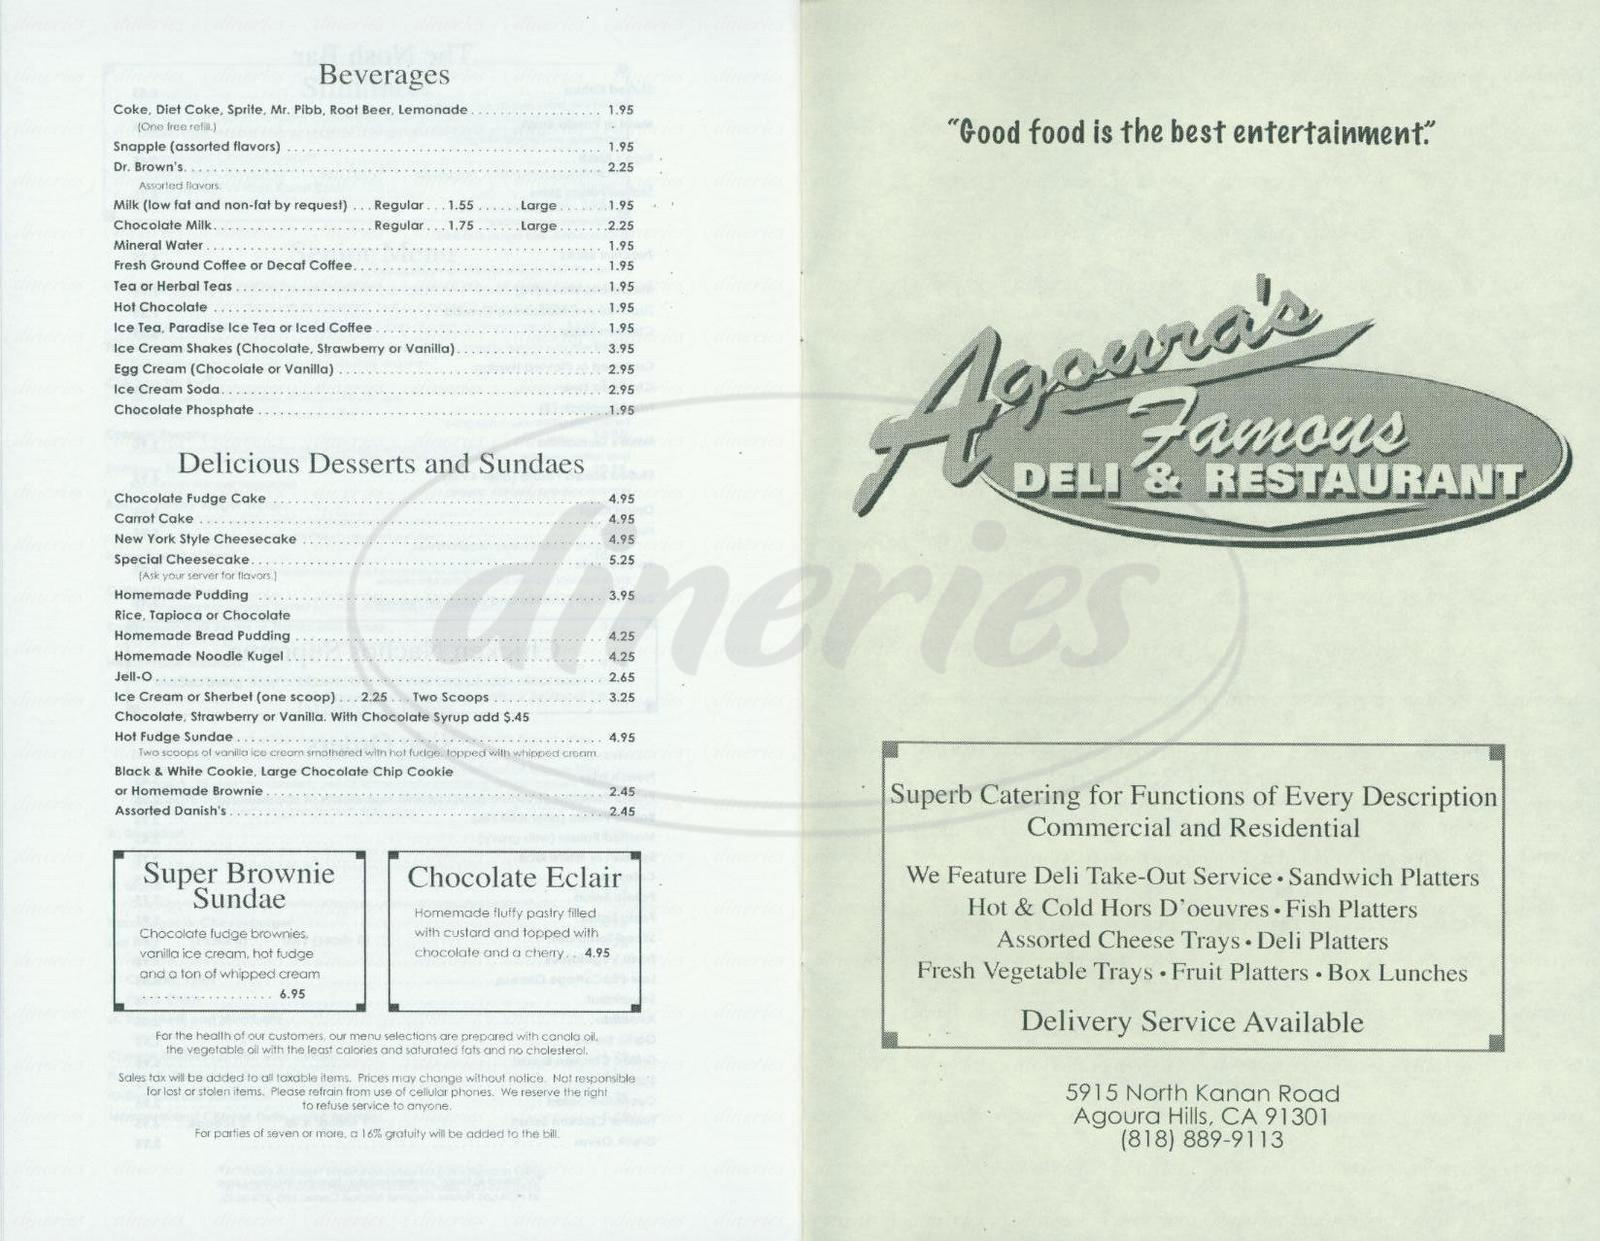 menu for Agouras Famous Deli & Restaurant